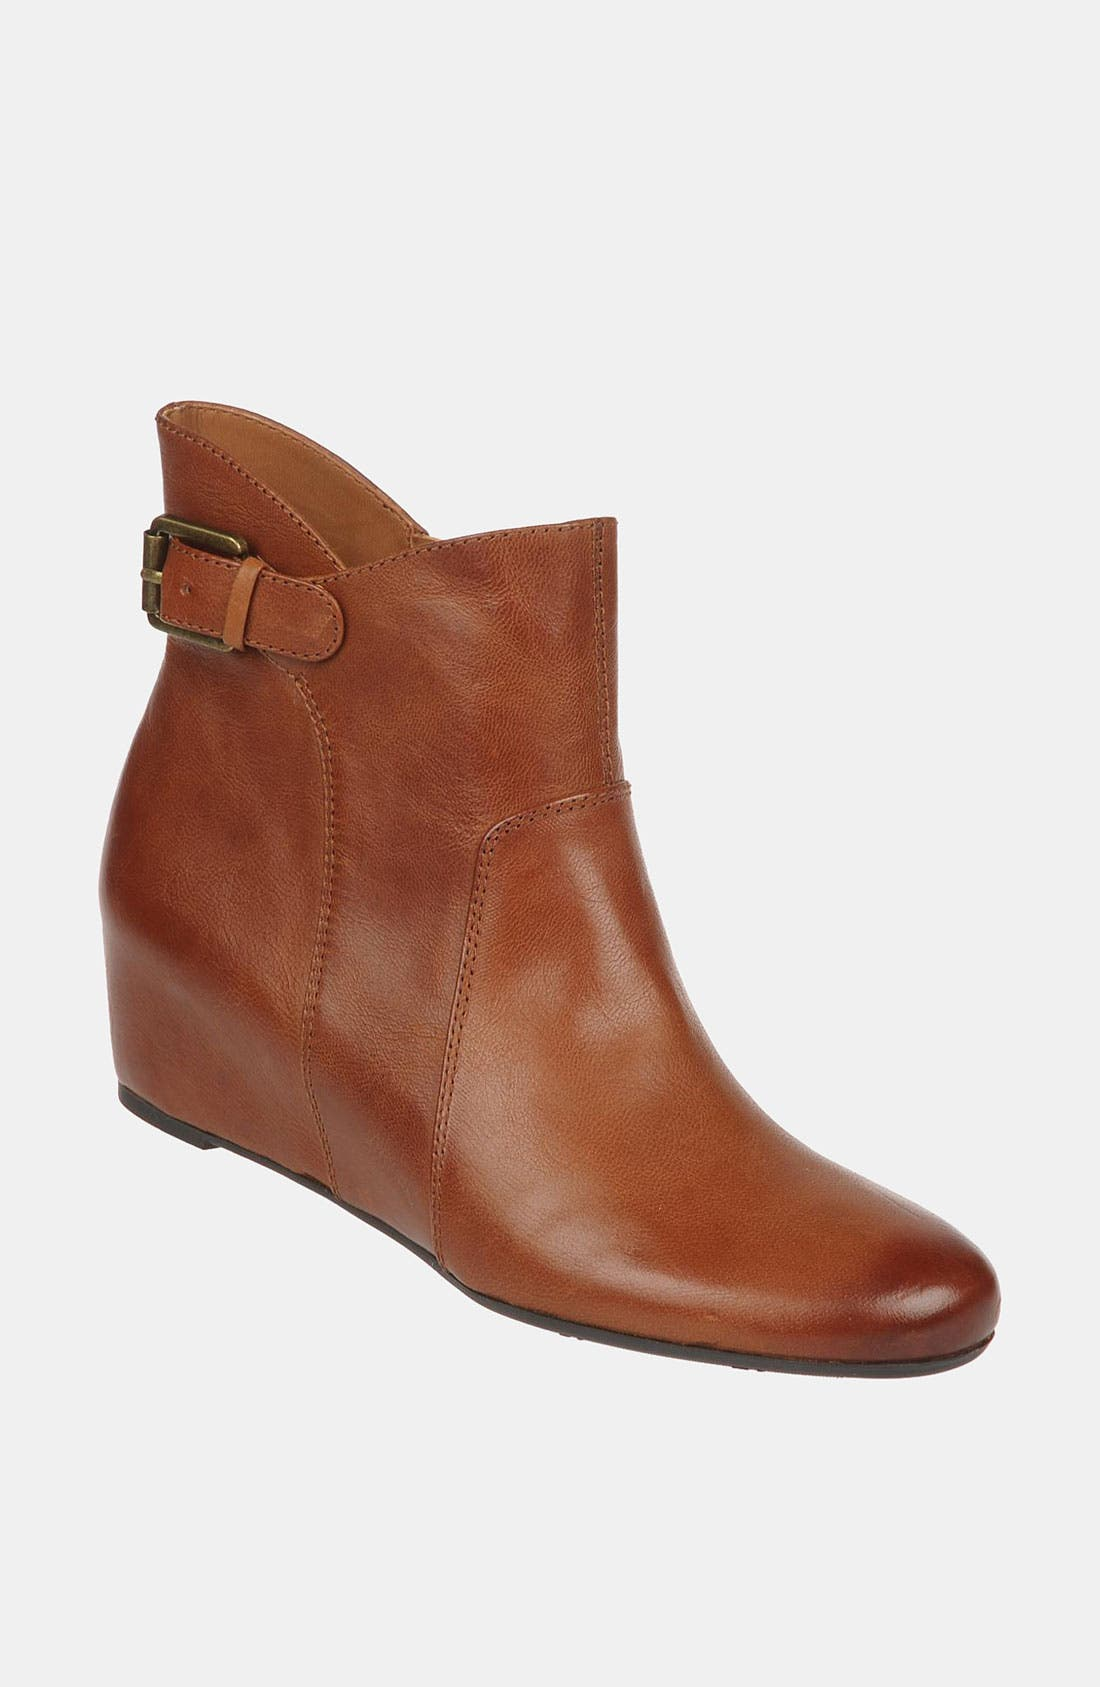 Alternate Image 1 Selected - Franco Sarto 'Irvine' Short Boot